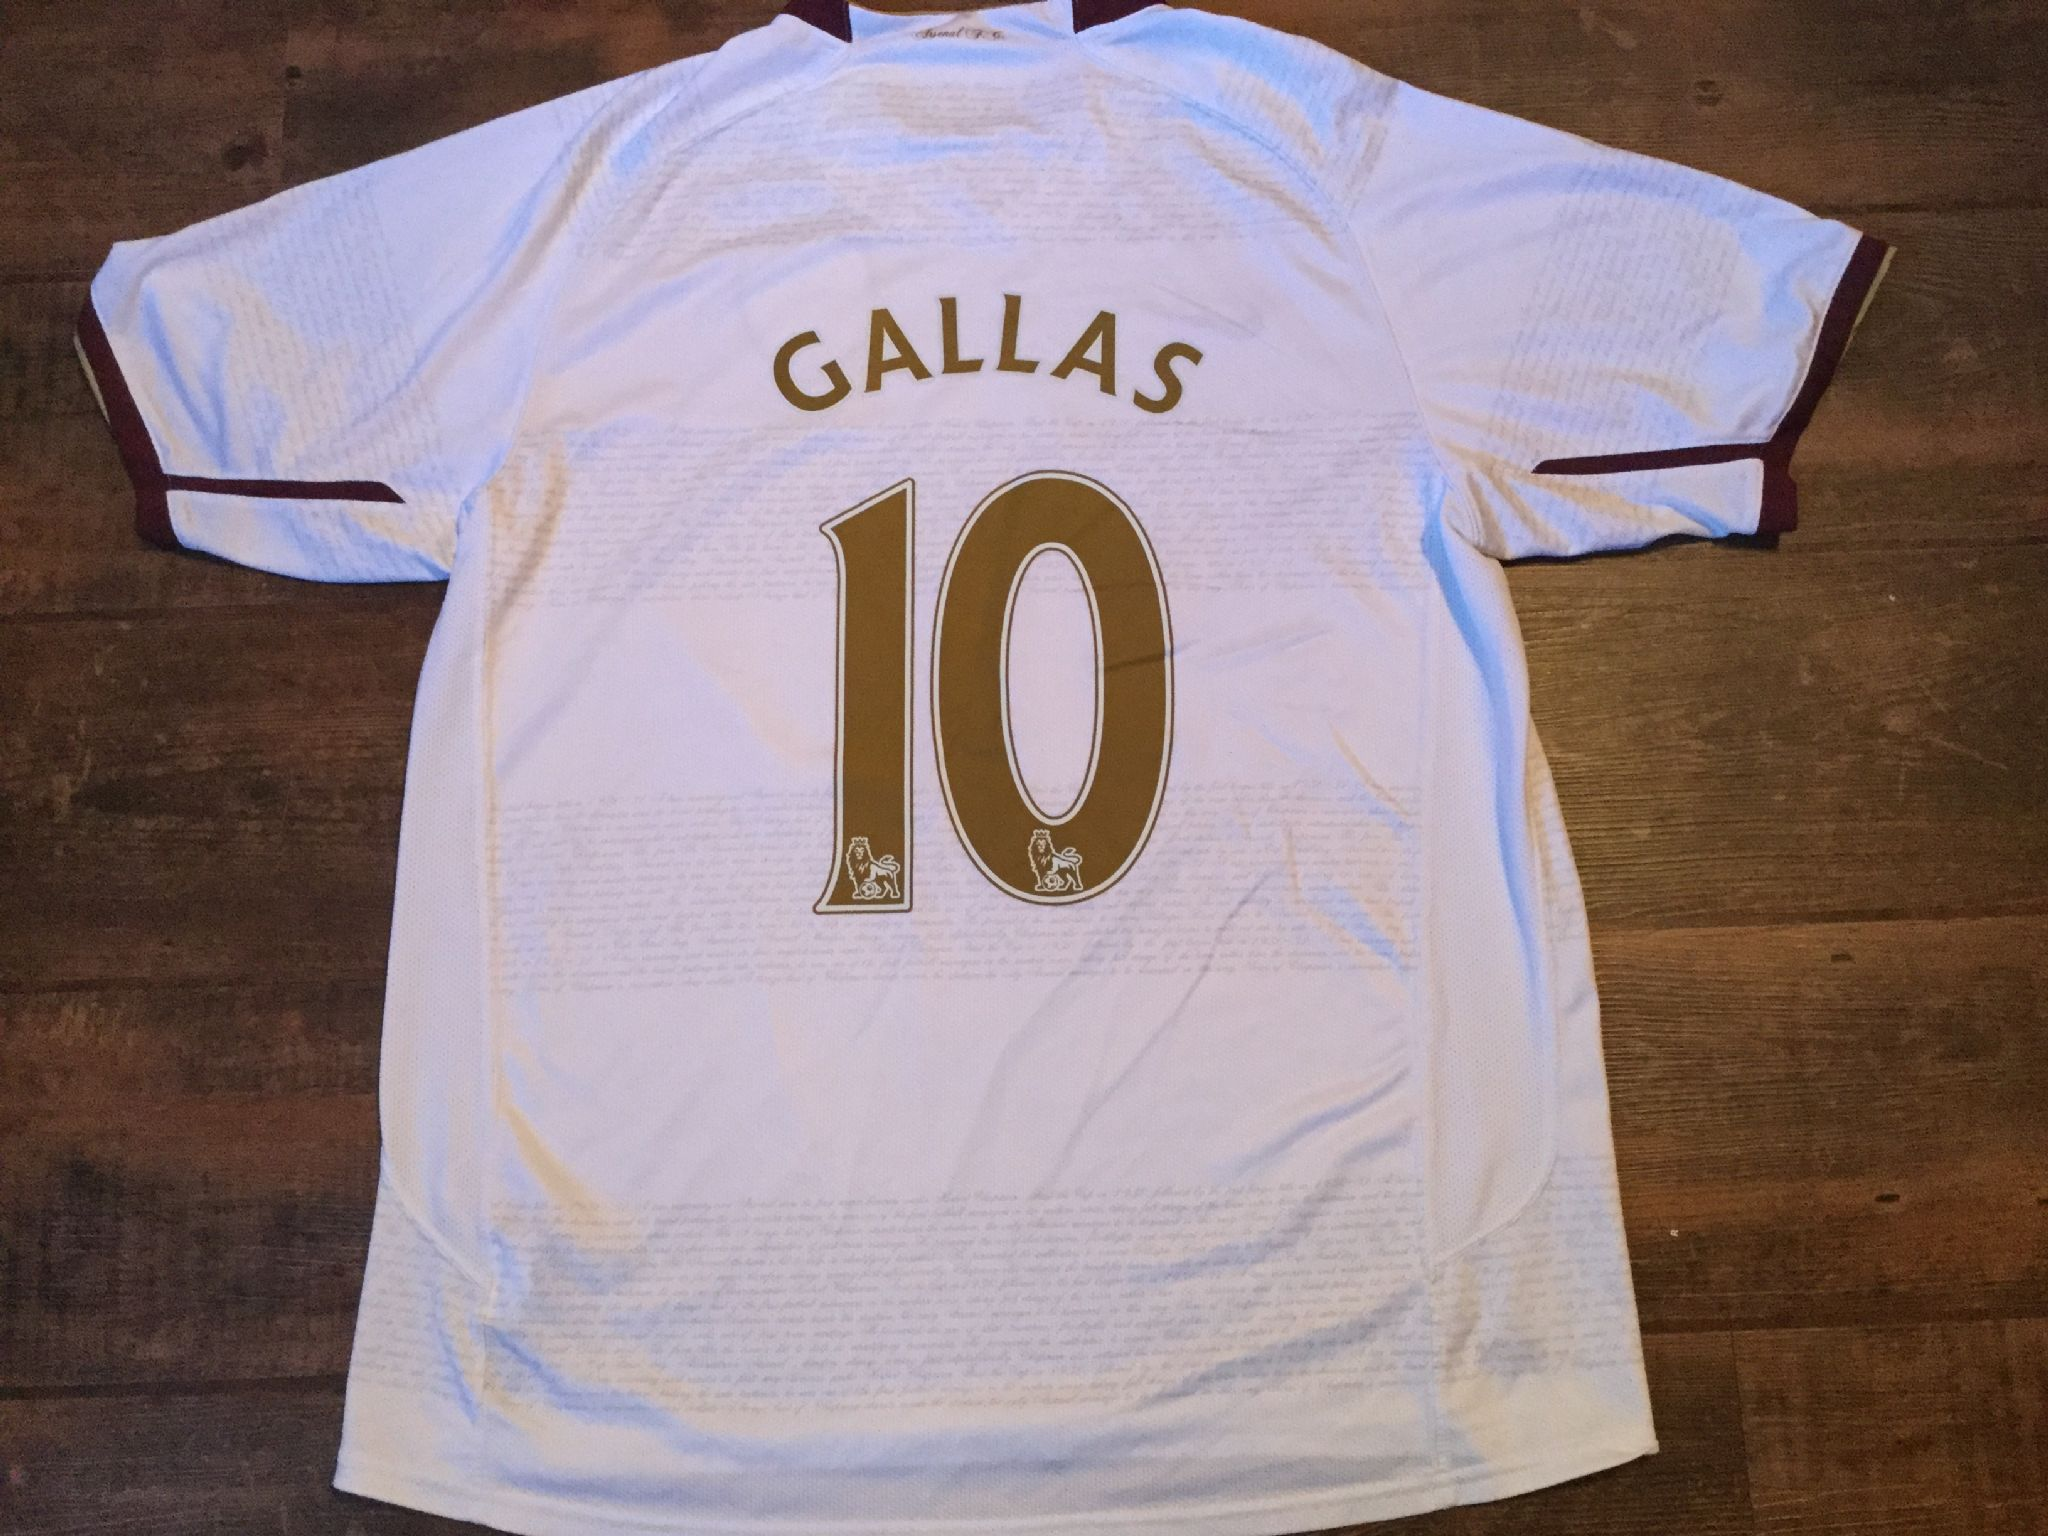 eb6c99ec7 2007 2008 Arsenal Gallas Away Football Shirt Adults Large